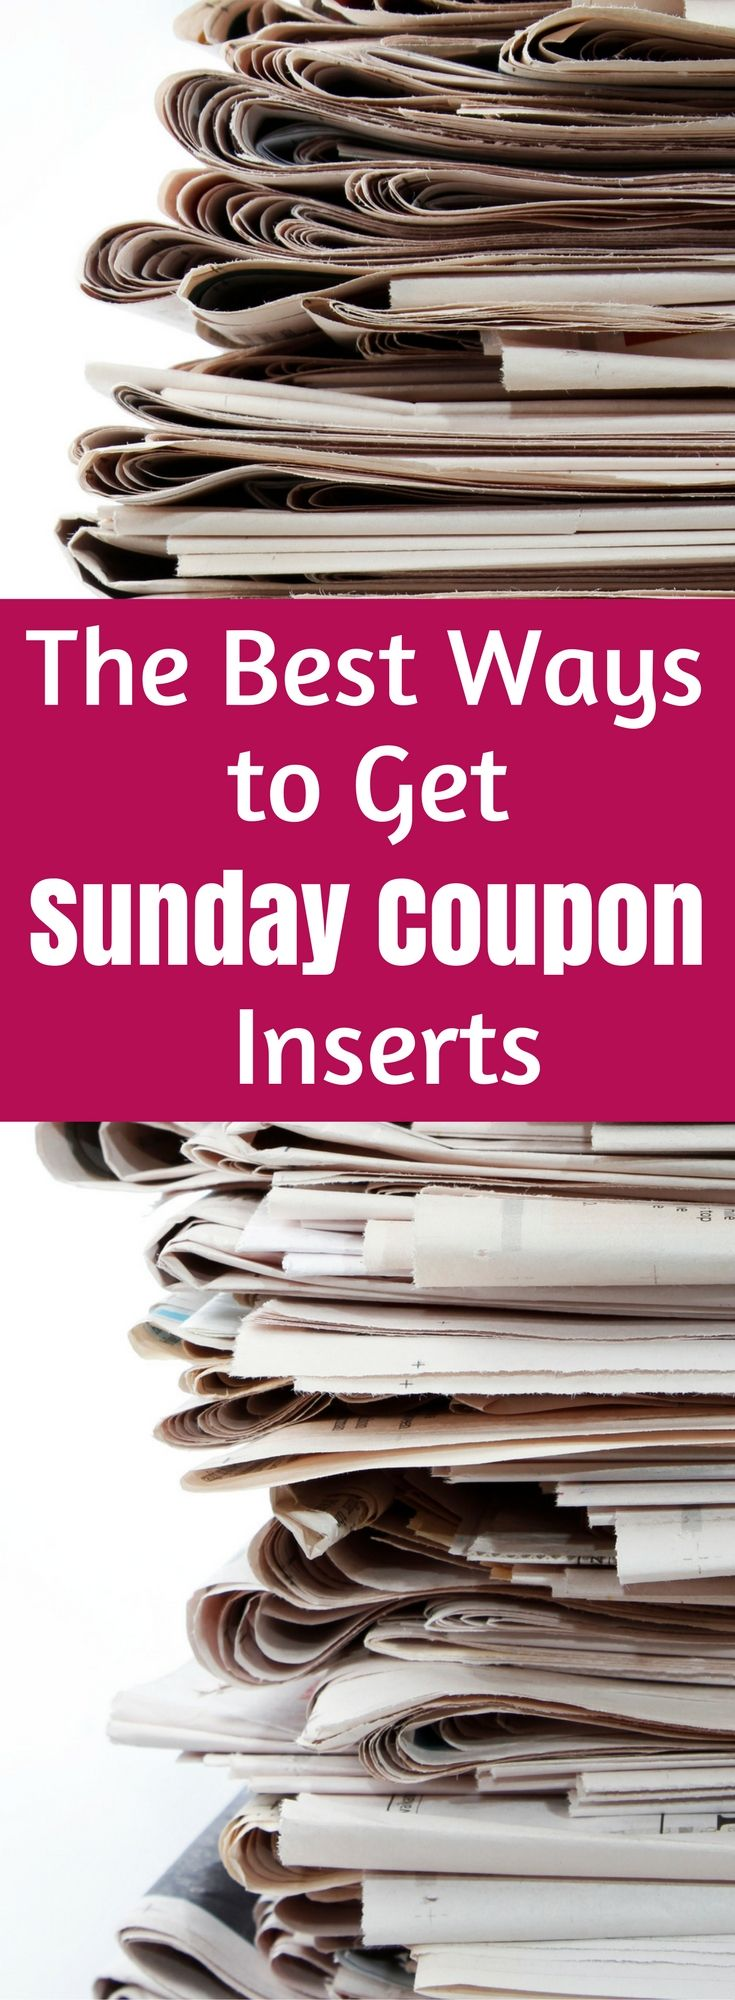 Get Sunday Coupon Inserts